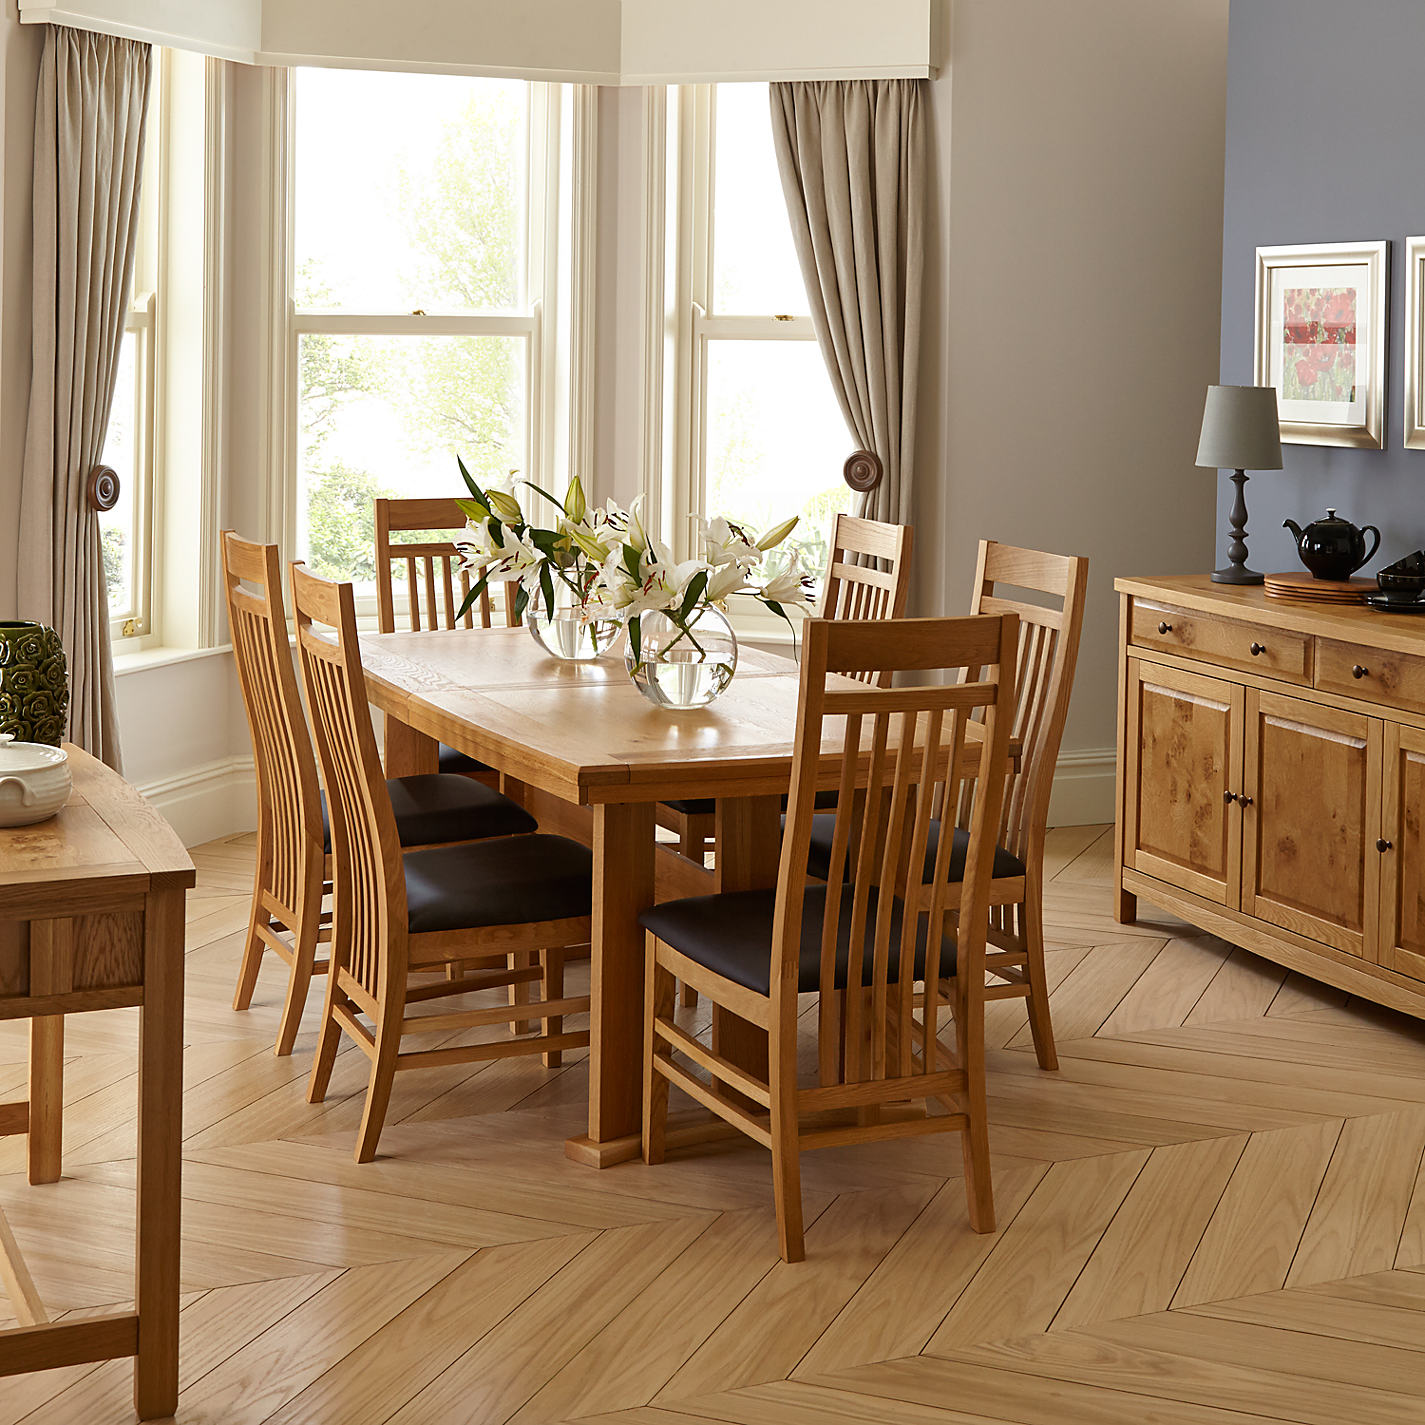 Buy John Lewis Burford Living Dining Room Furniture Online At Johnlewis